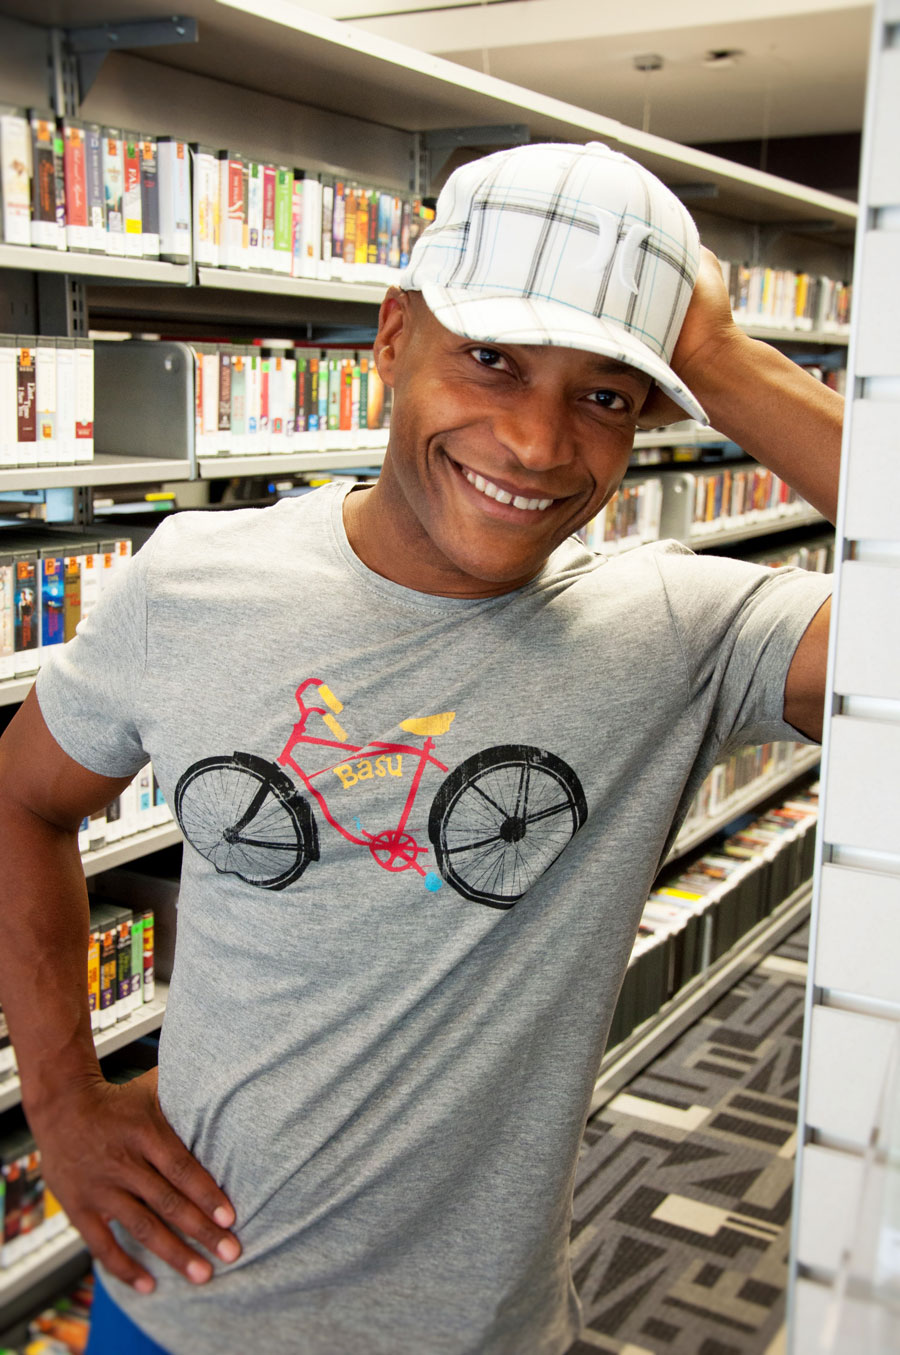 man with hat and sports outfit on in library